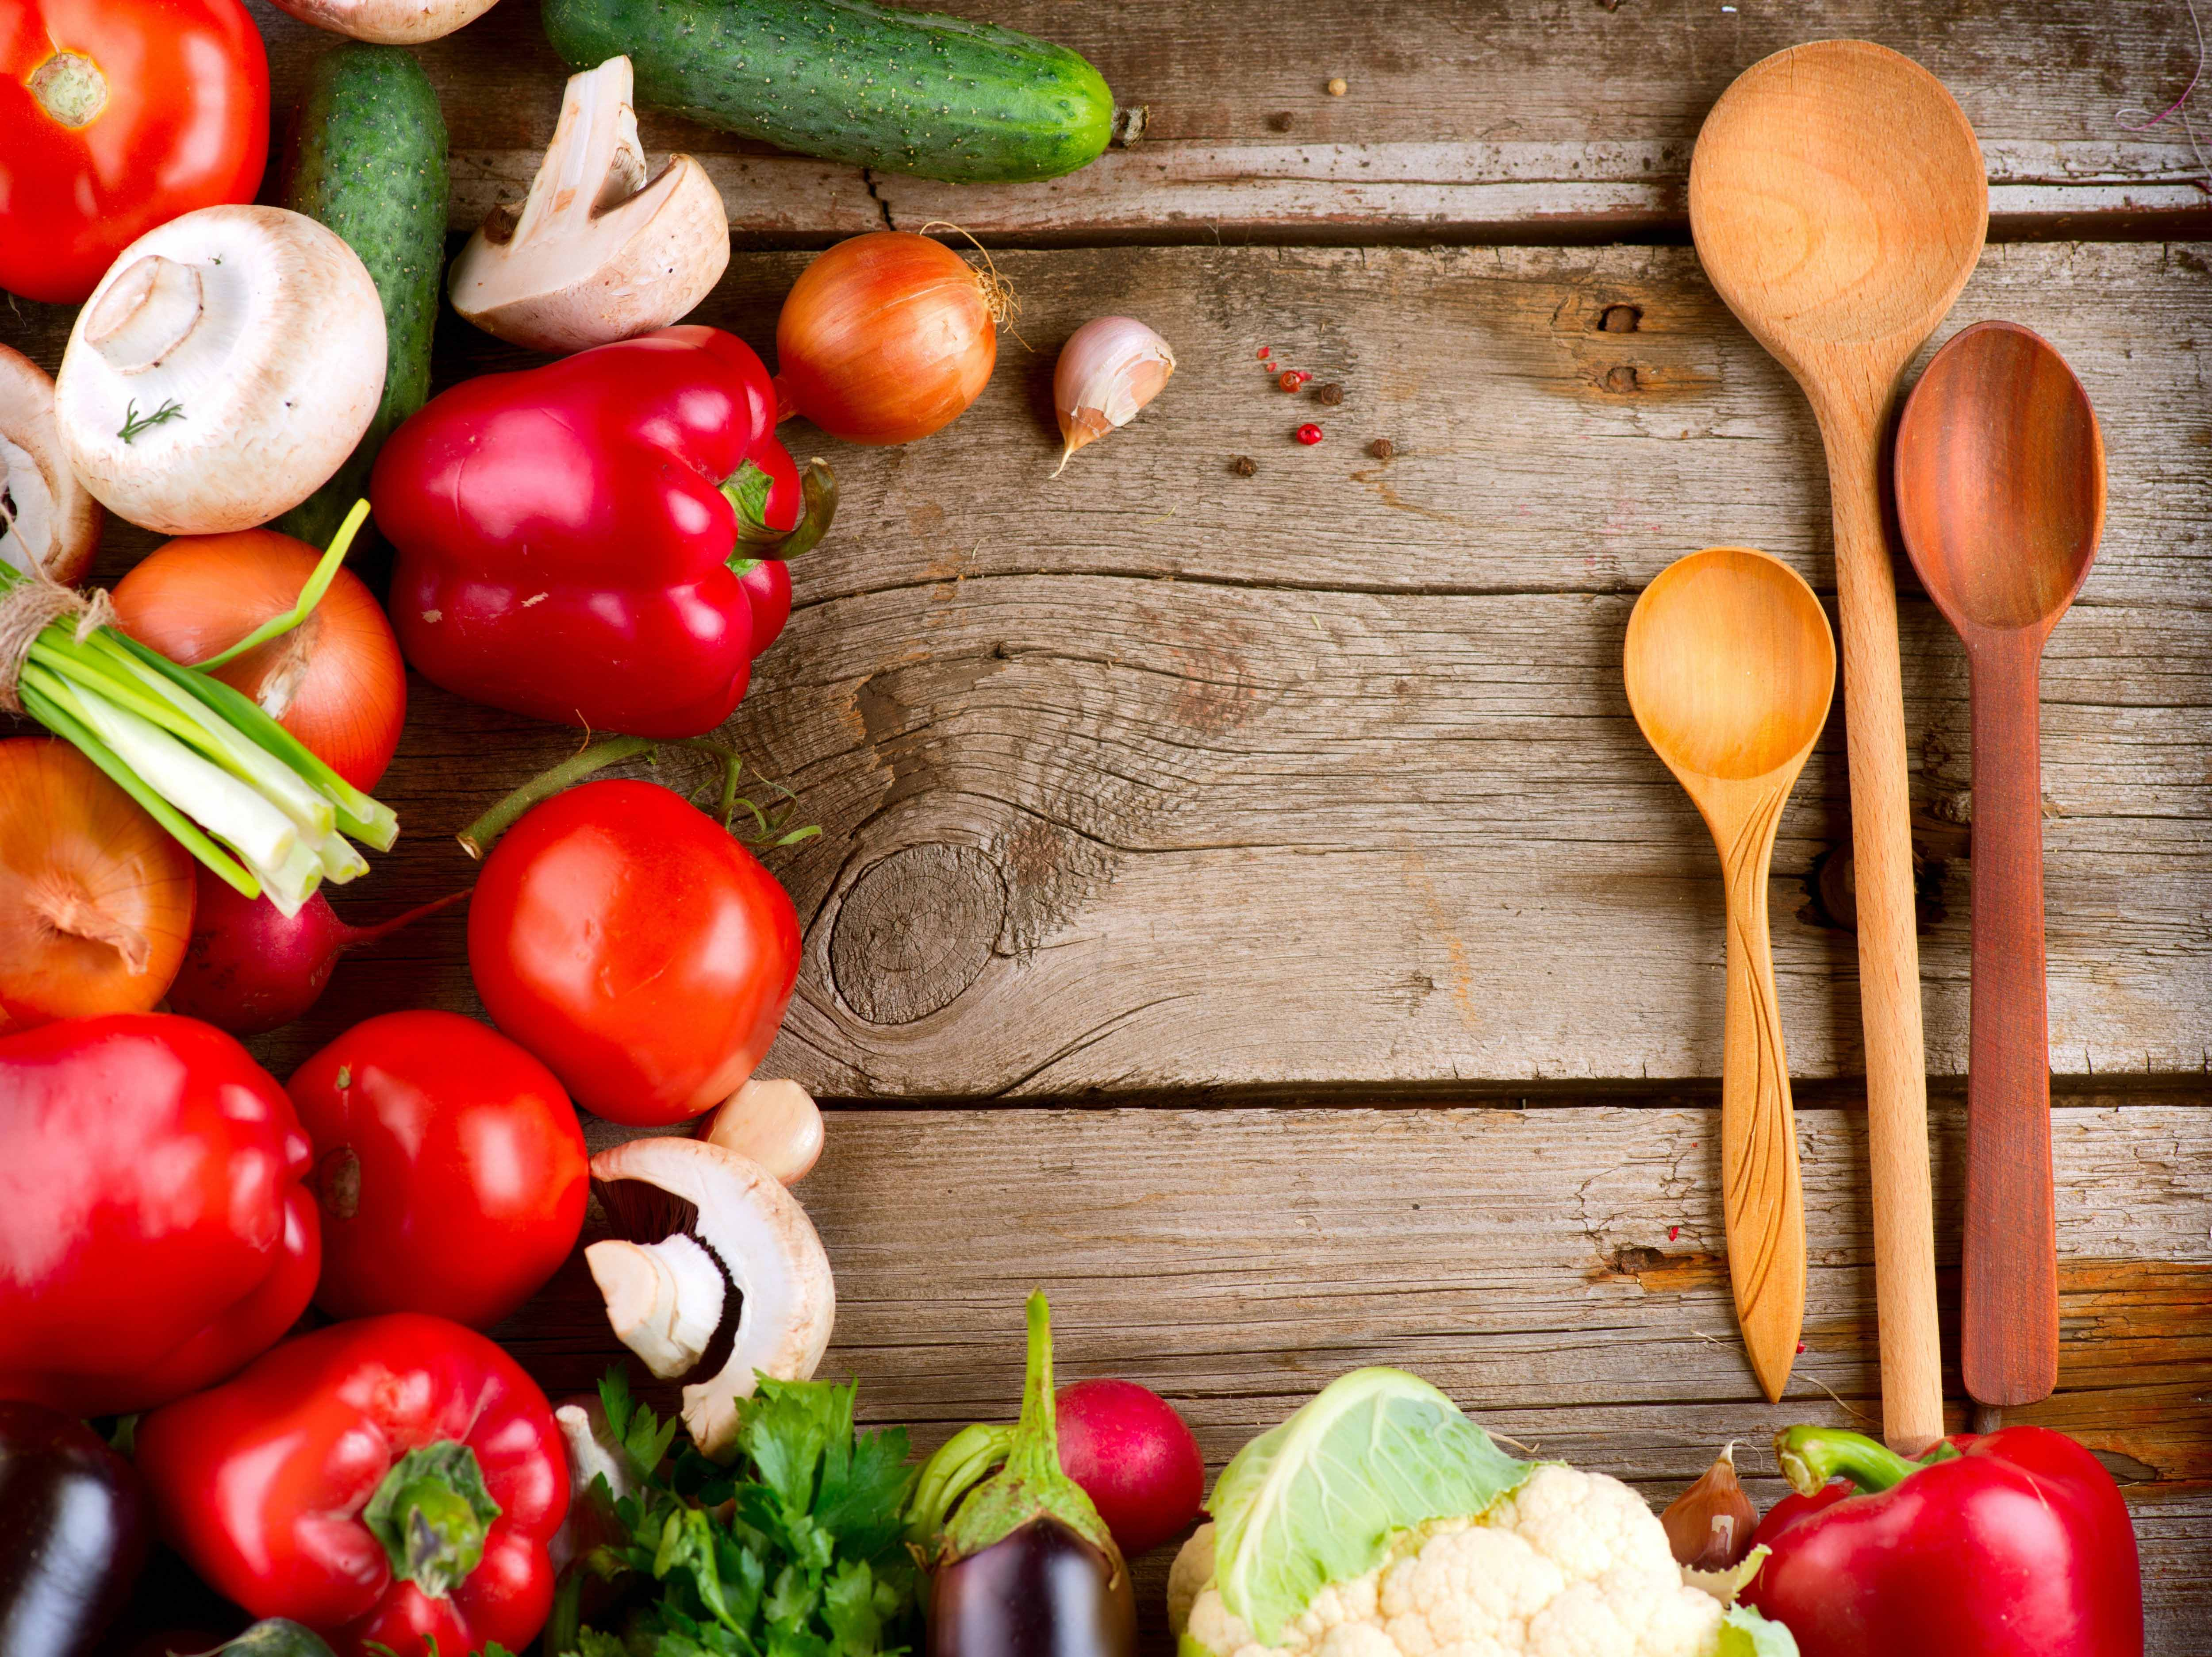 32396-vegetables-1680x1050-photography-wallpaper